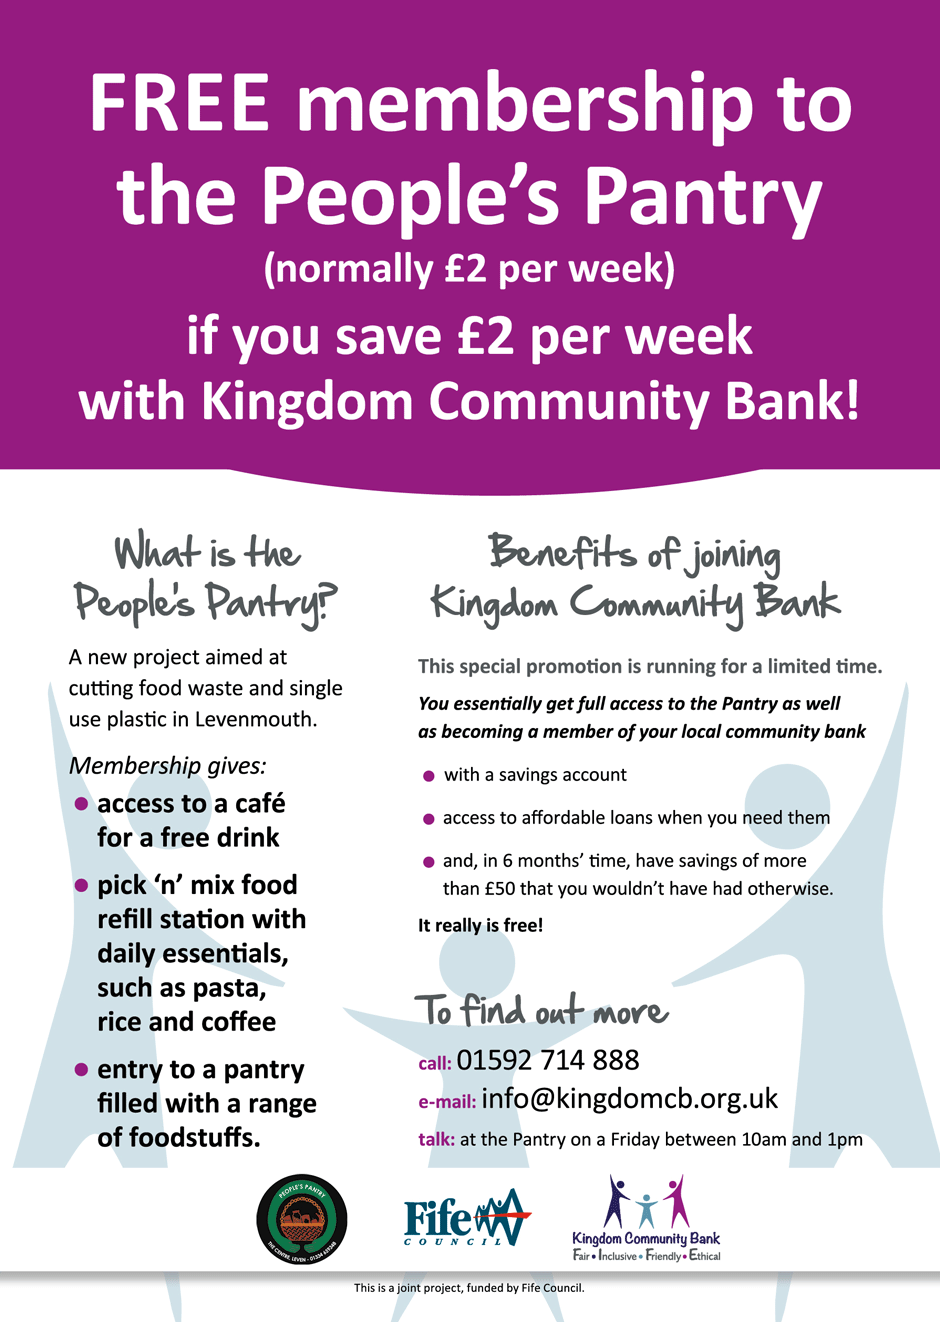 People's Pantry and Kingdom Community Bank poster image